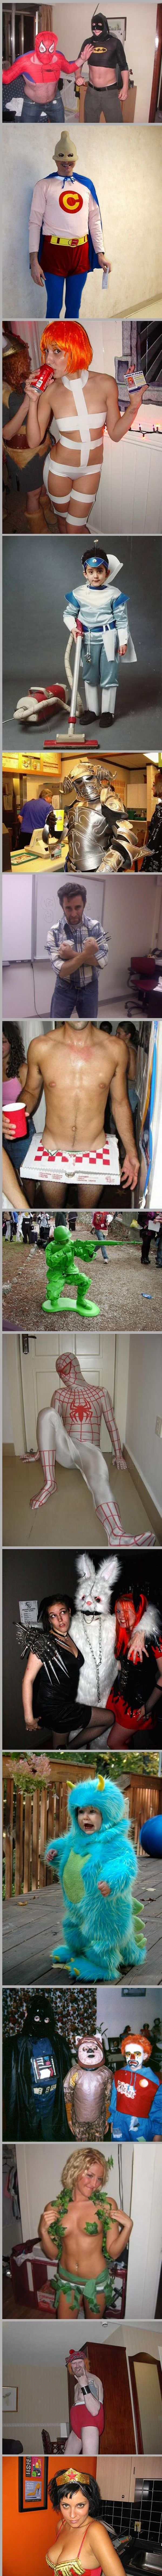 Weird and hilarious Halloween costumes (46 pics)